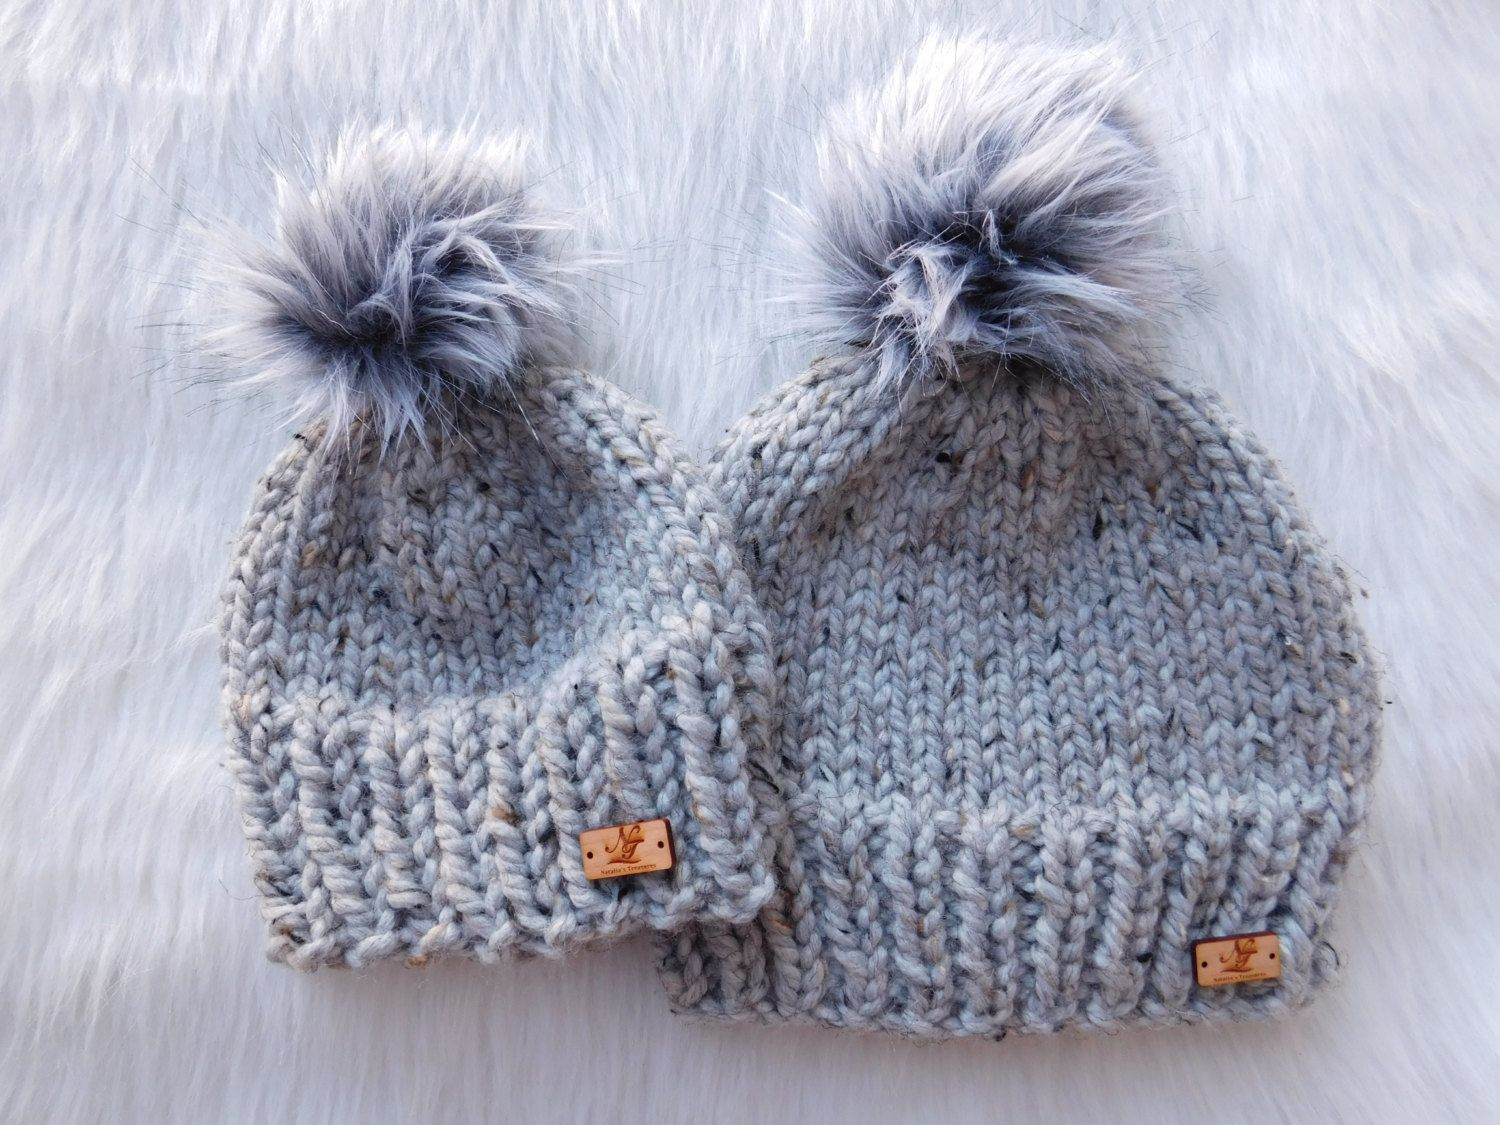 5a13de01b27 Matching hats.Mommy and Me hats. Mini me and Me hat. Mom Son hats.Mom  daughter hats. Solid color with pom pom hats. by NataliaTreasures on Etsy